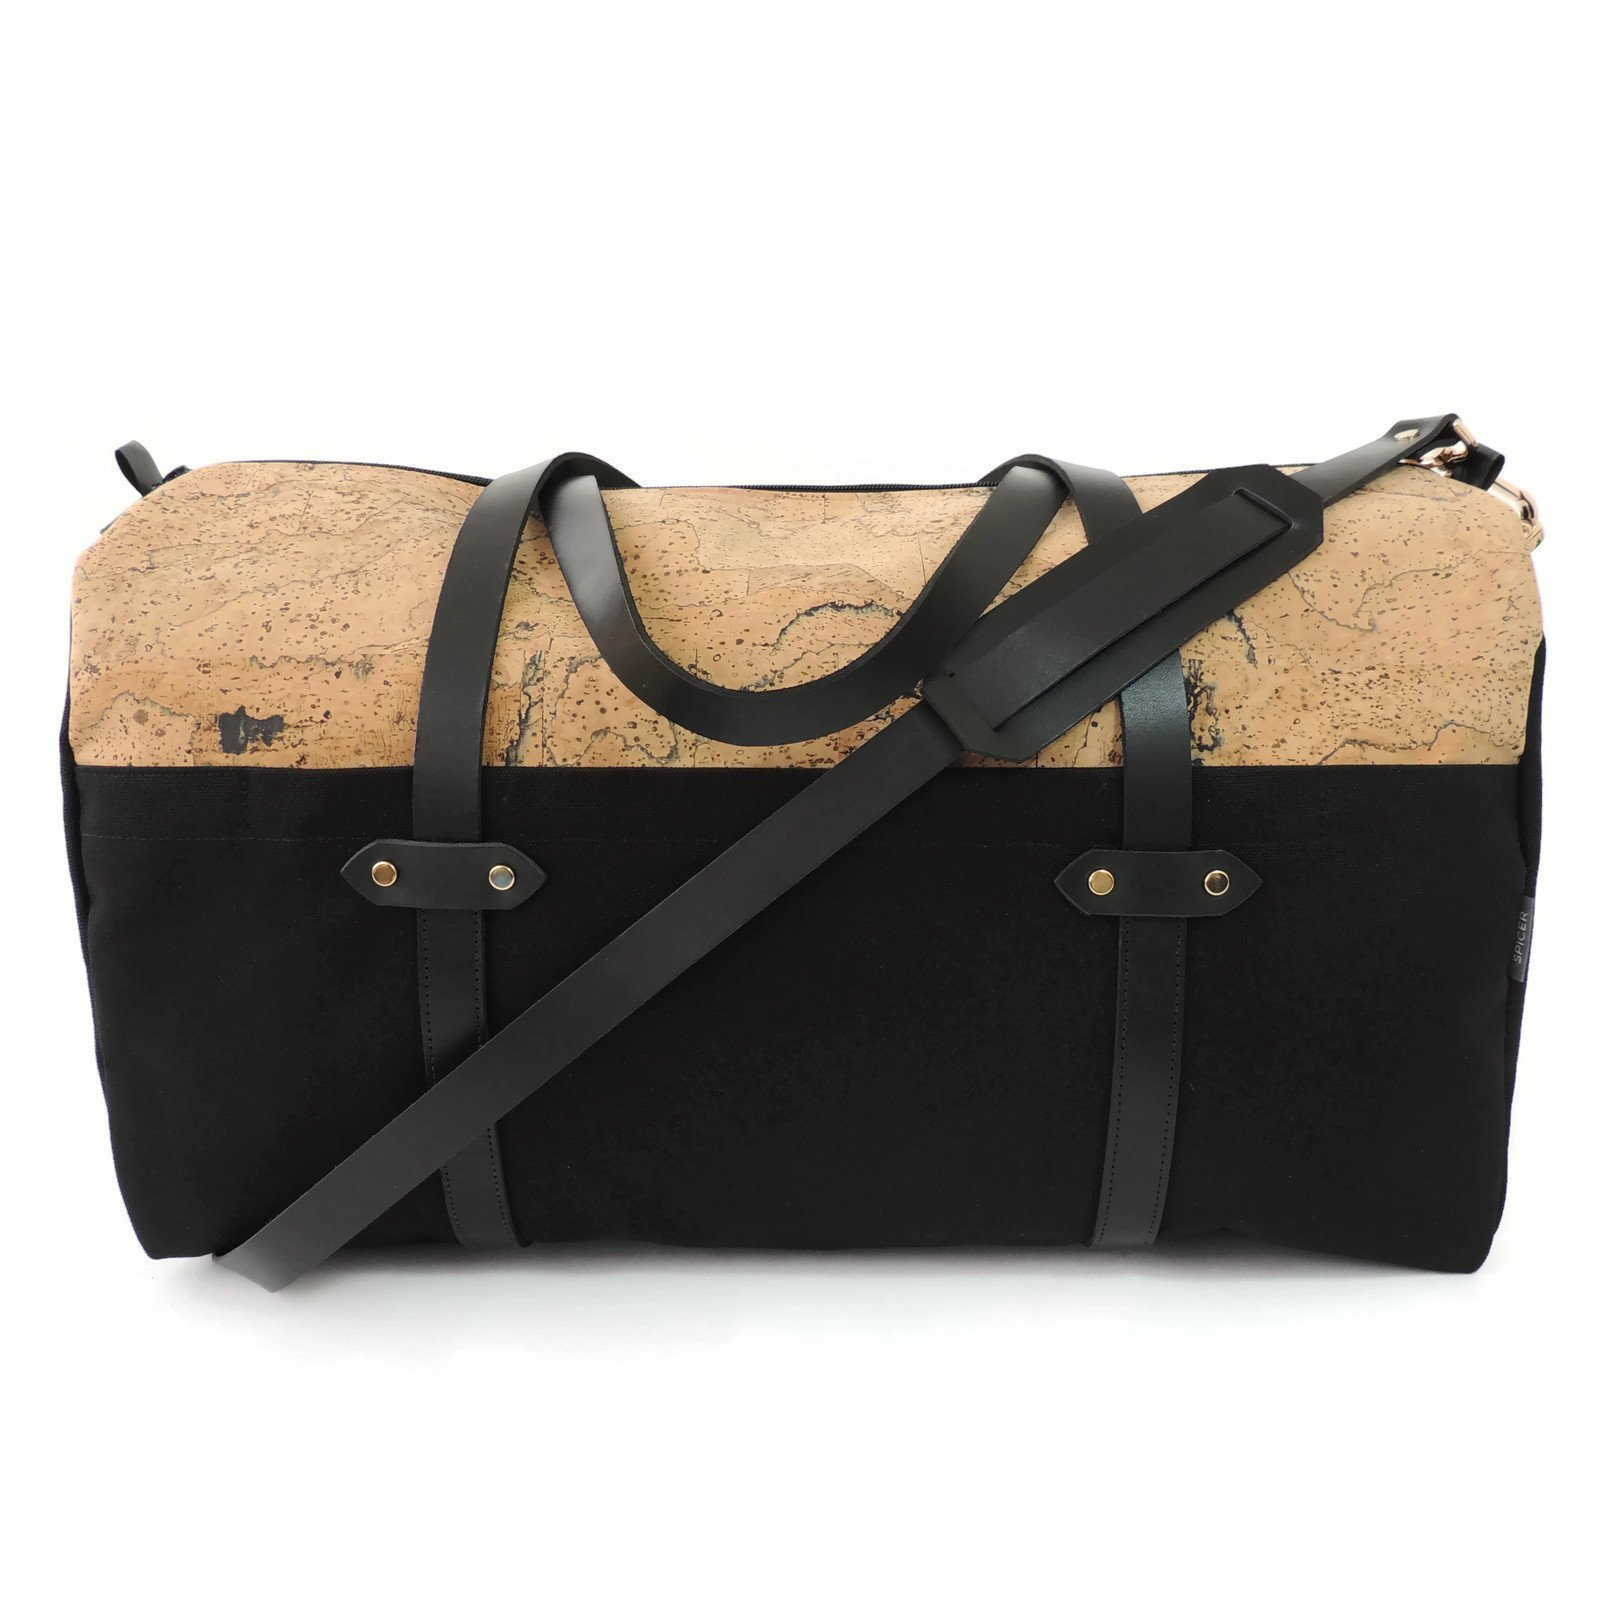 Marble Cork and Black Canvas Duffle Bag Weekender by Spicer Bags